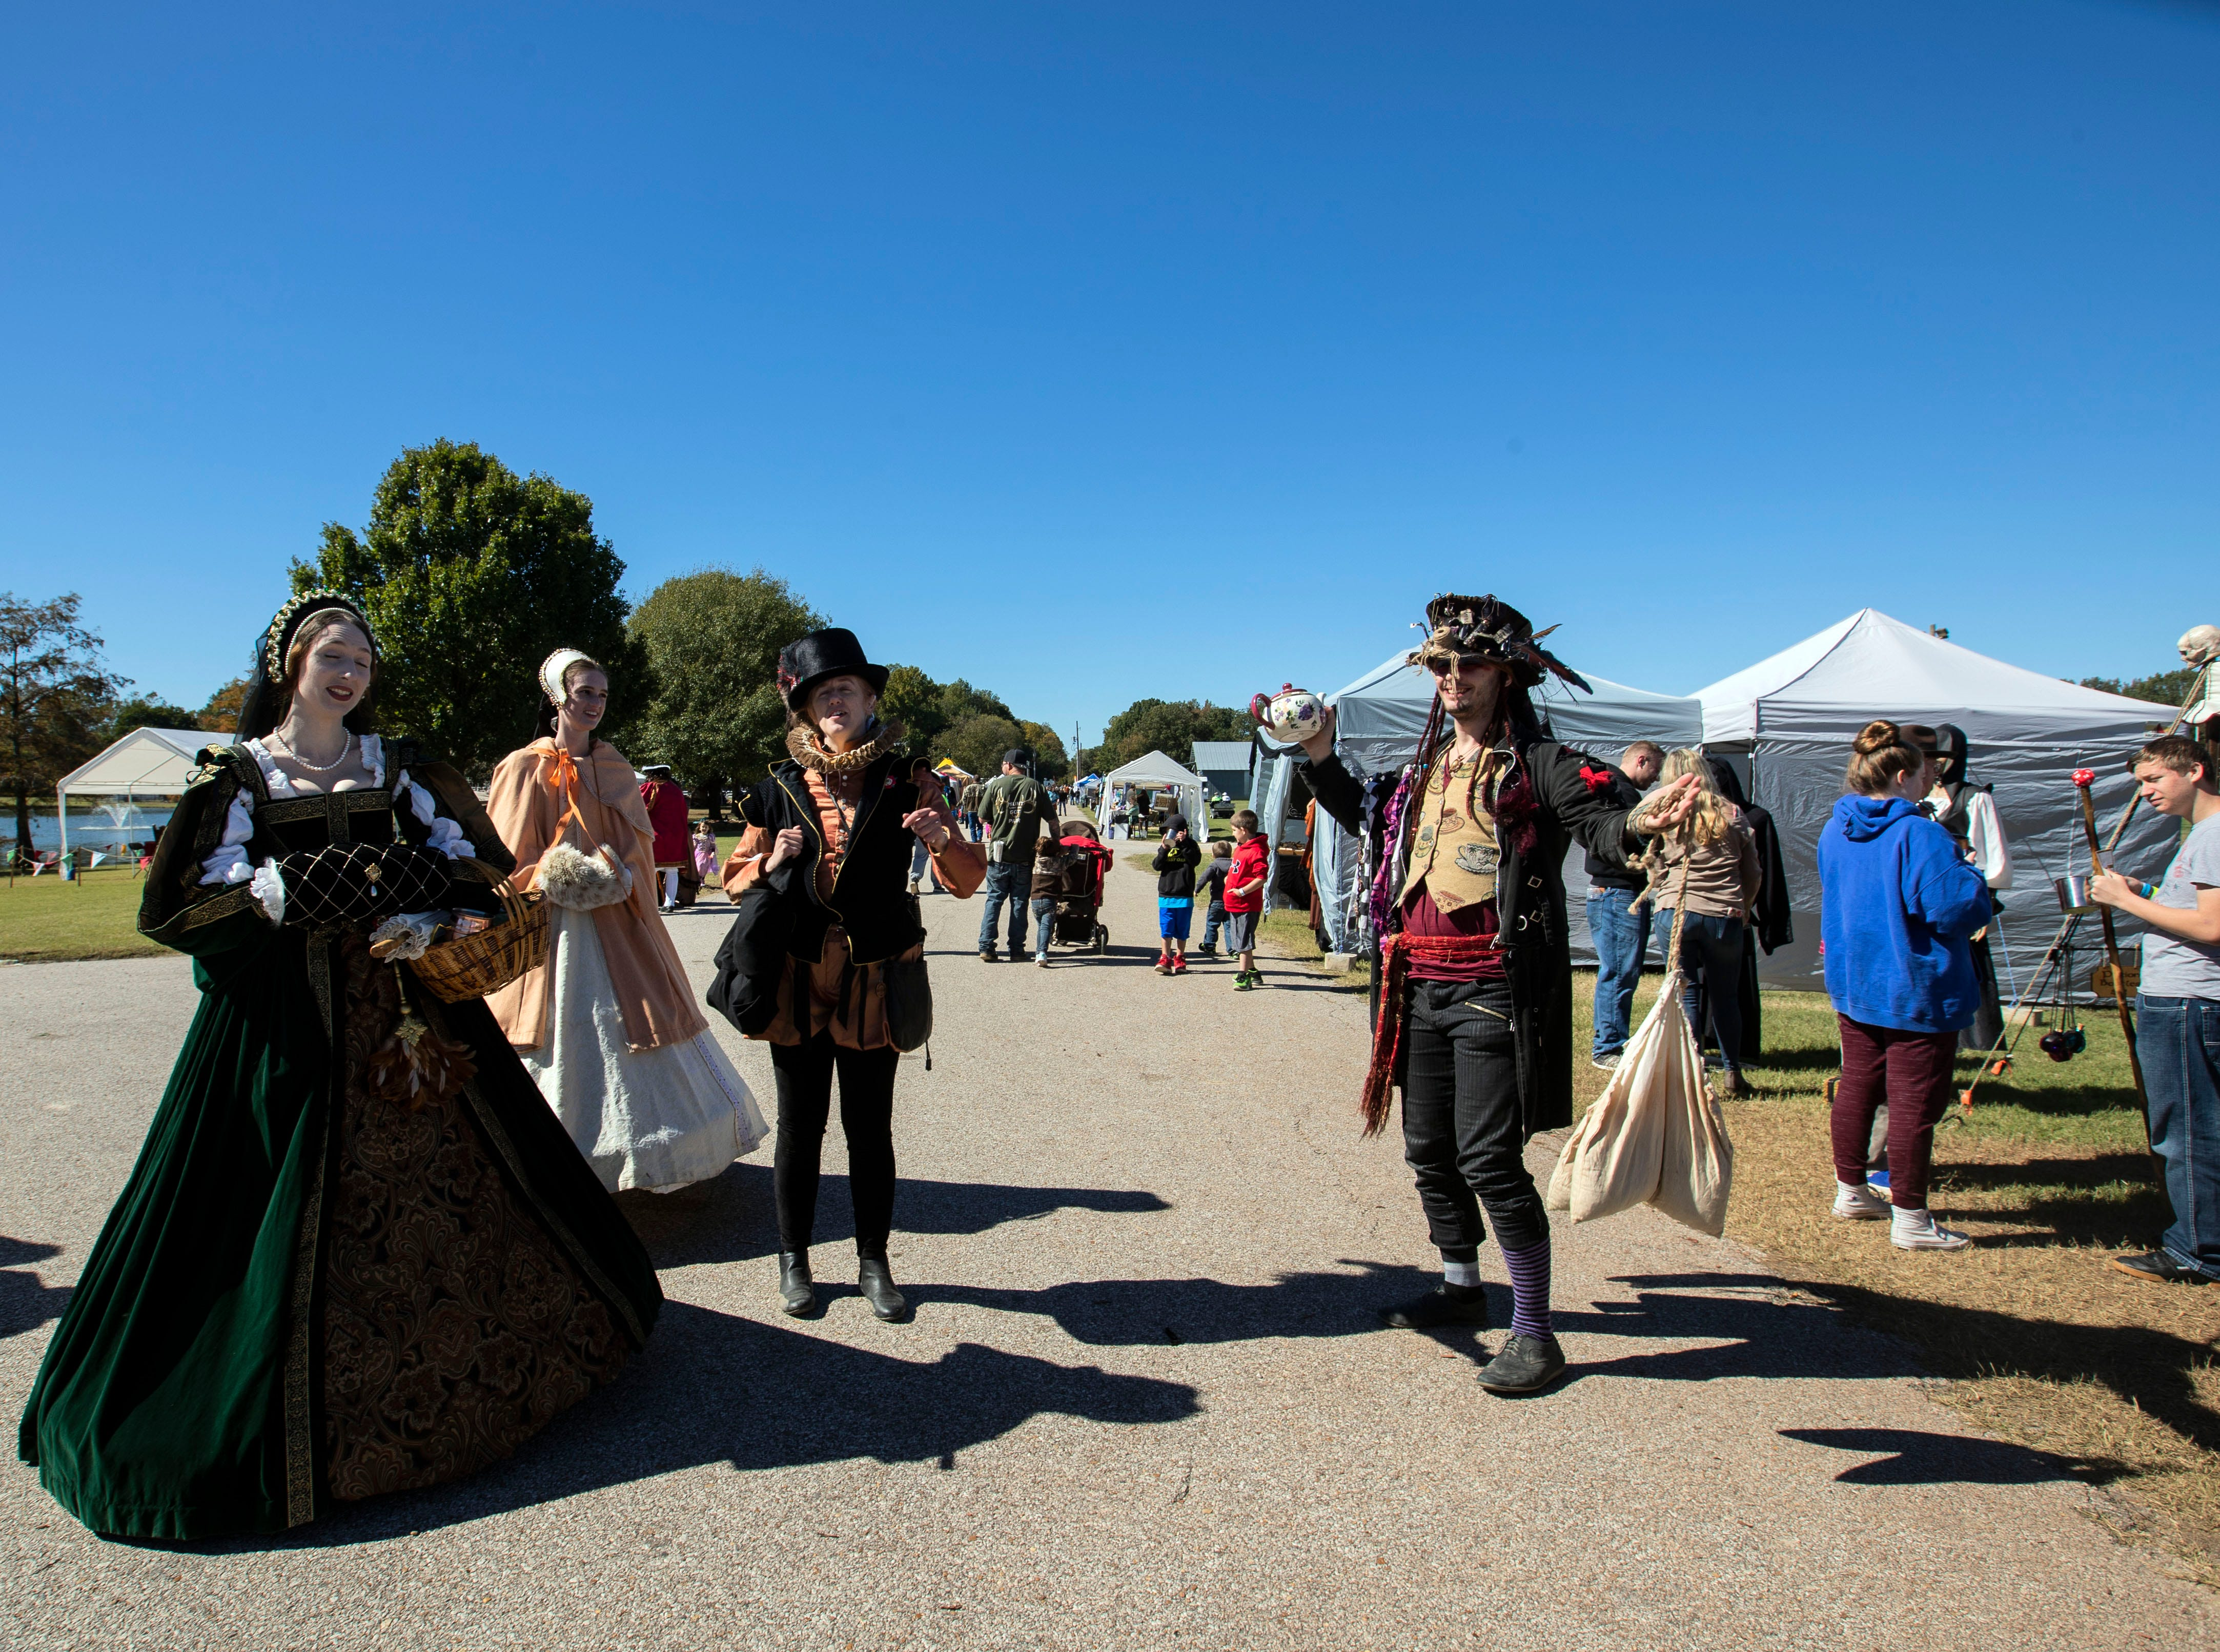 The Mid South Renaissance Faire theme was the reign of Queen Elizabeth I. The faire featured dances, be knights, performances and  jouster on horseback Sunday October 21,2018 in Millington, Tennessee.